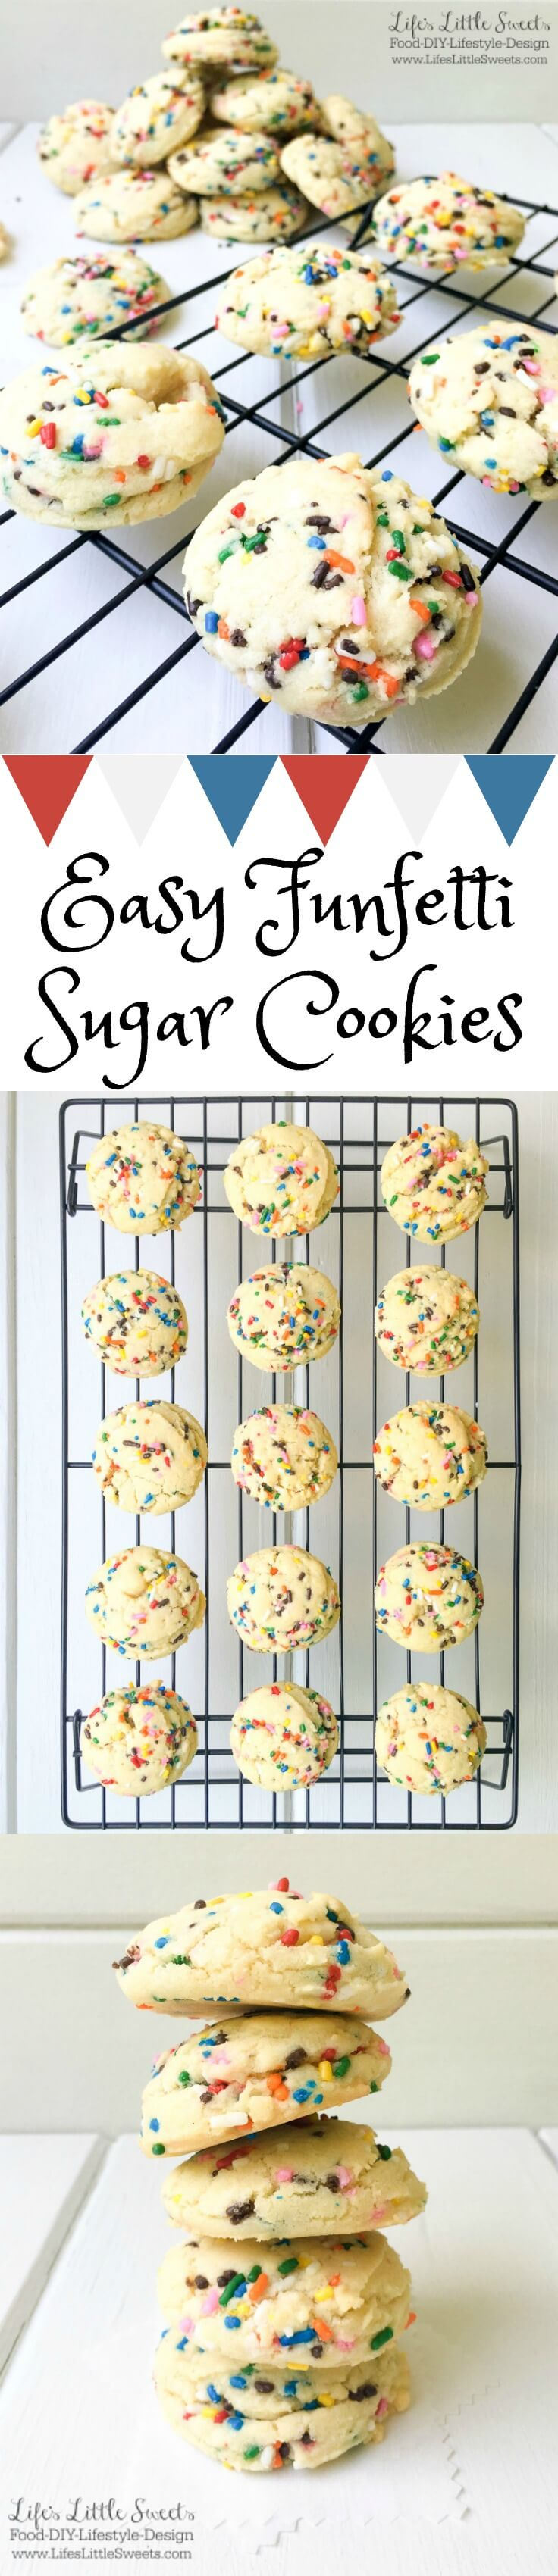 These Easy Funfetti Sugar Cookies are chewy, fluffy and sprinkled with color throughout. With only 9 simple pantry ingredients, you can enjoy these festive cookies in less than 30 minutes!